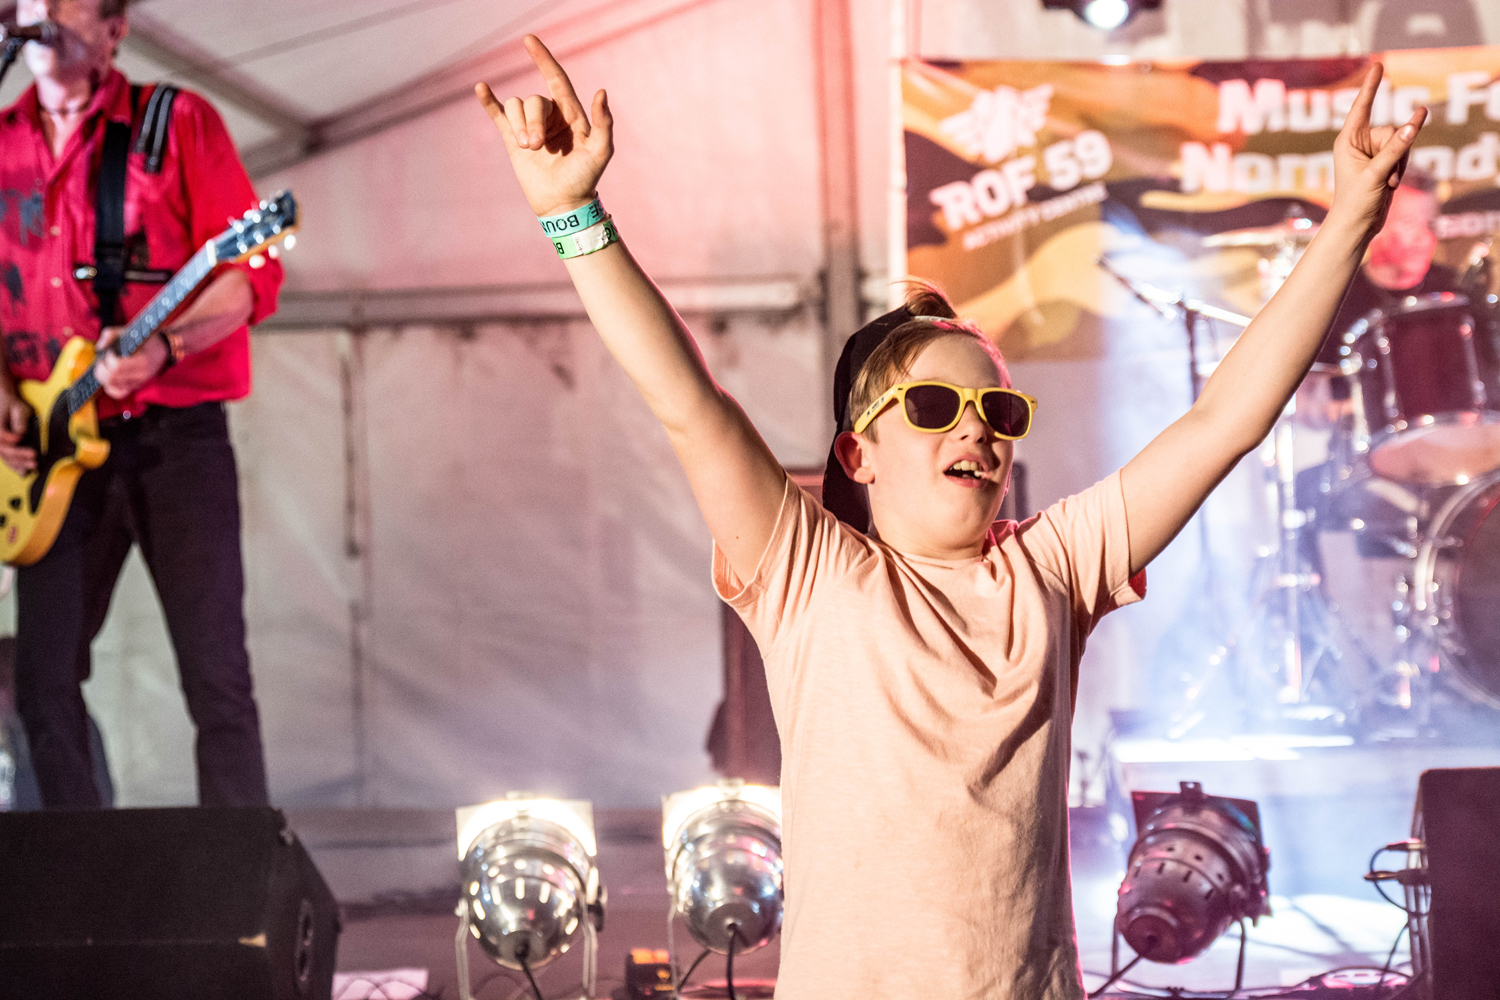 500+ People Set for 'Bigger and Better' Music Festival